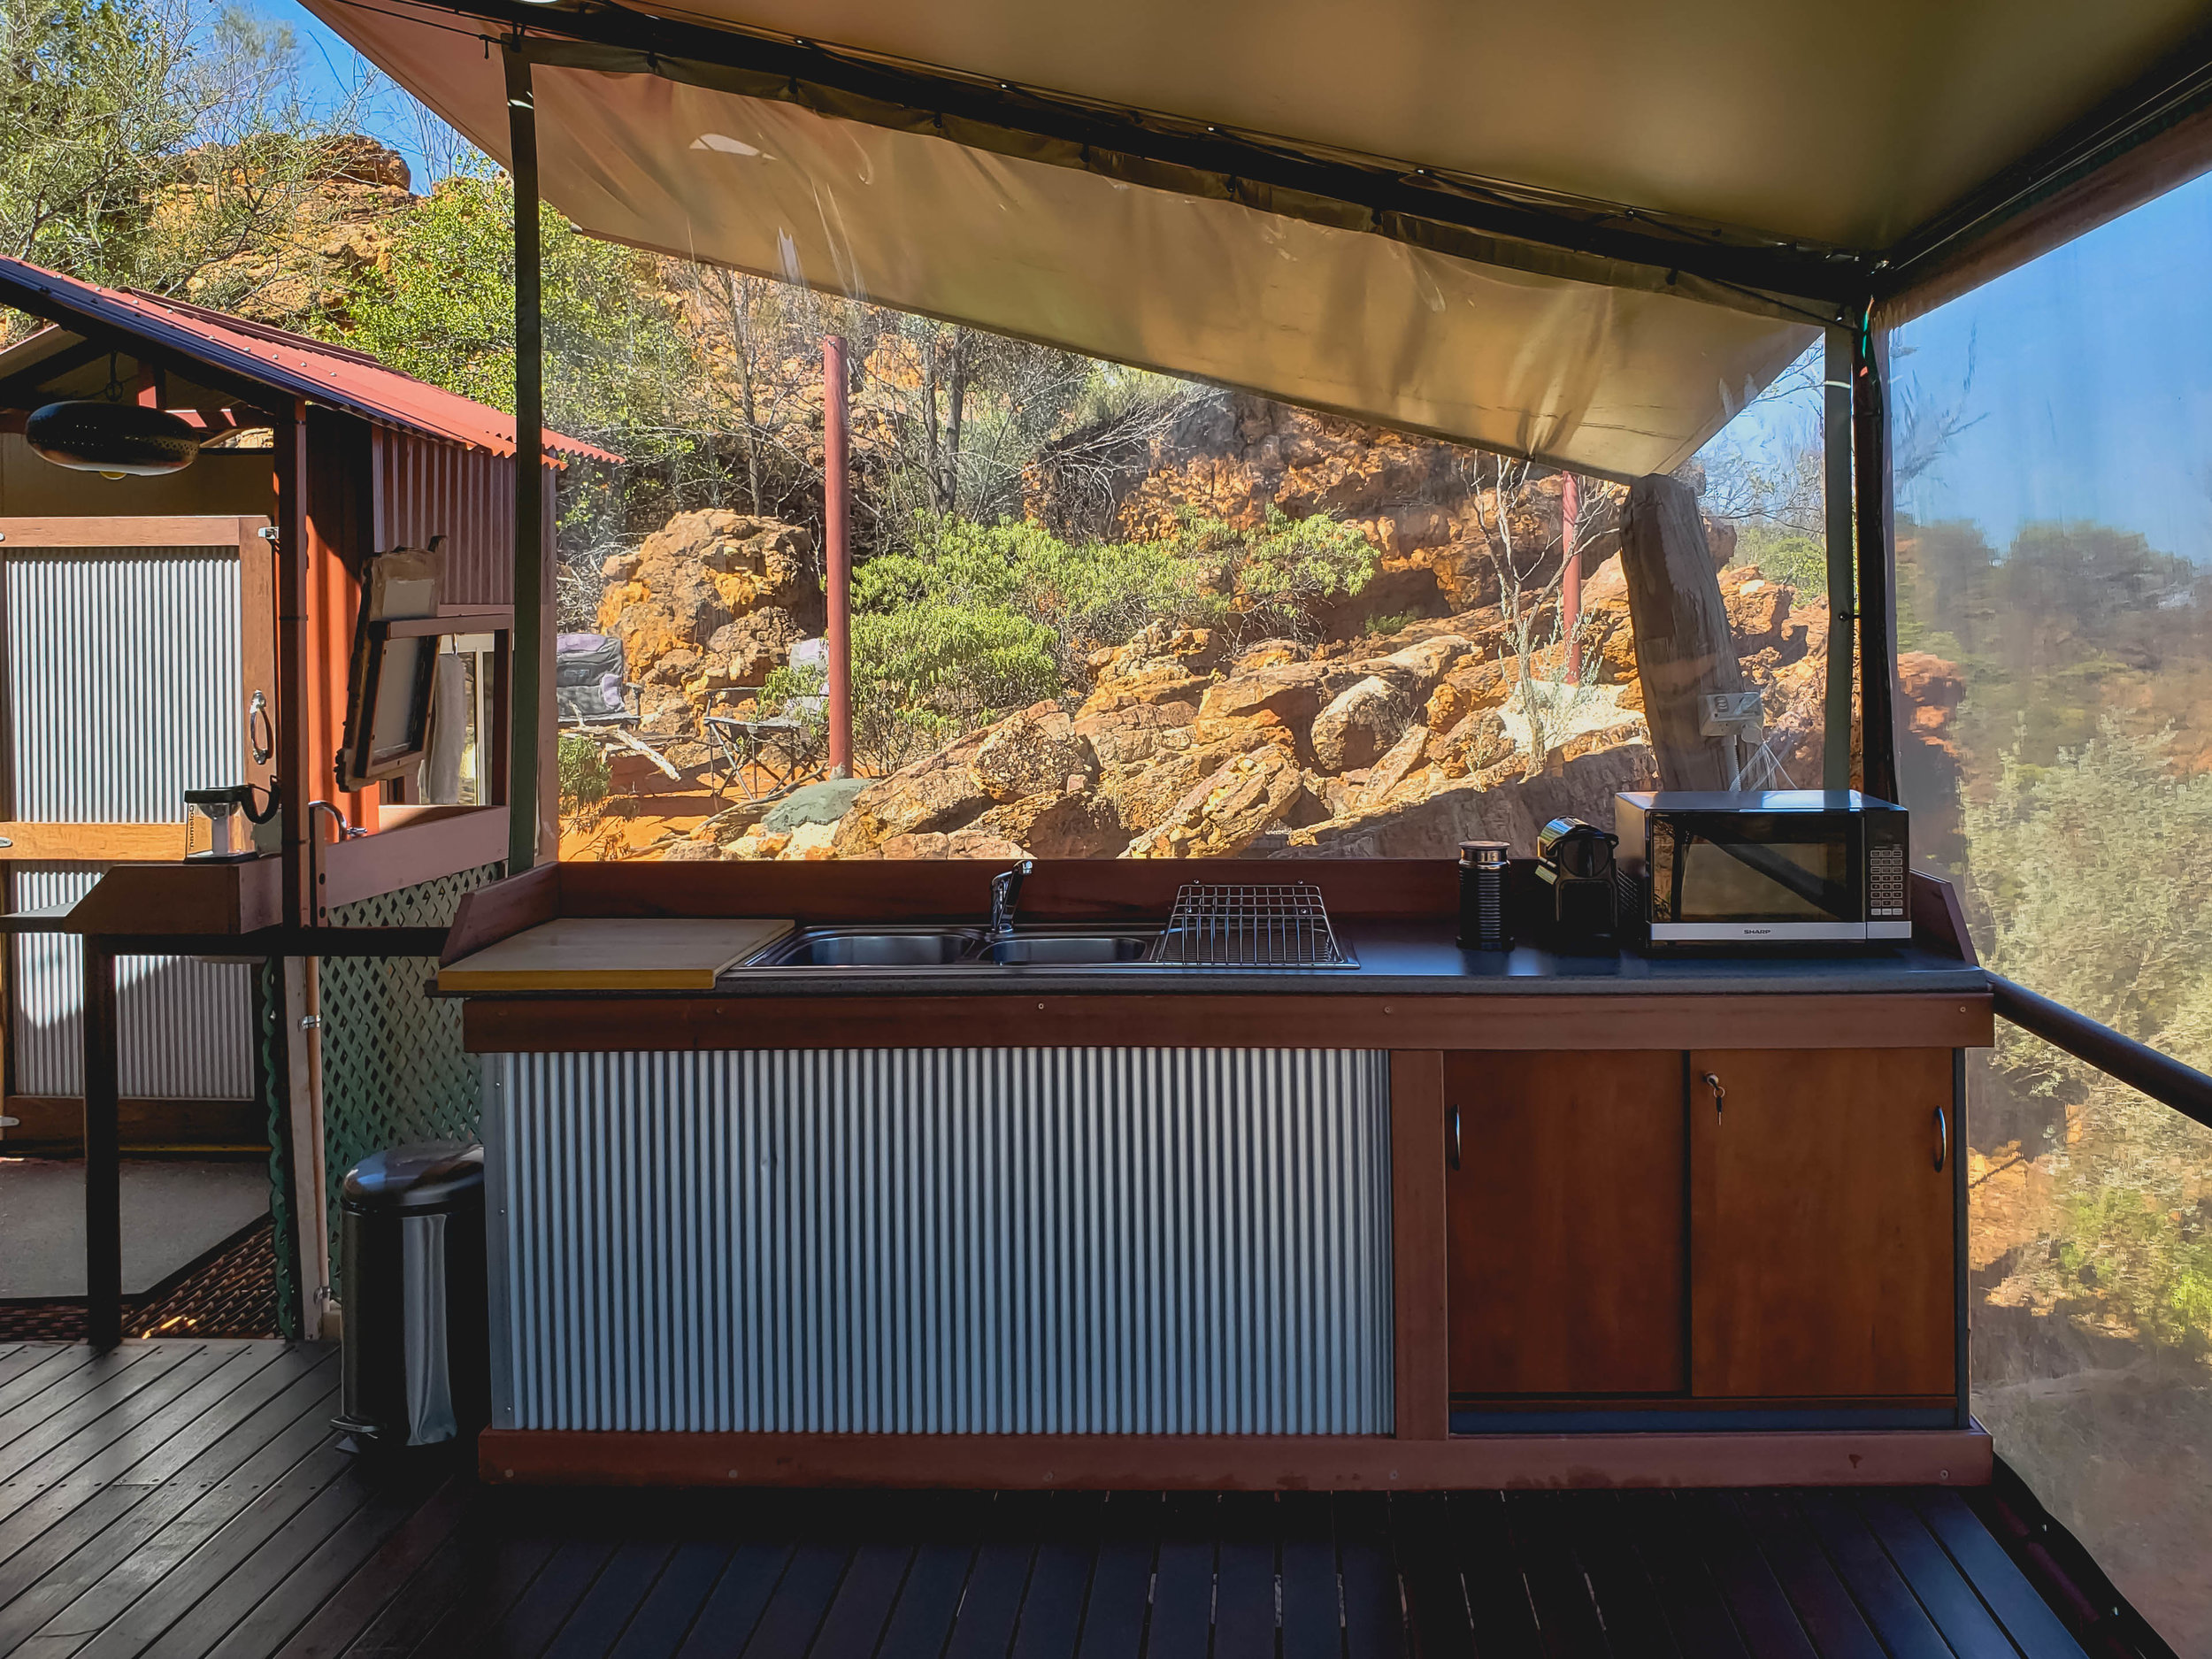 outdoor kitchen.